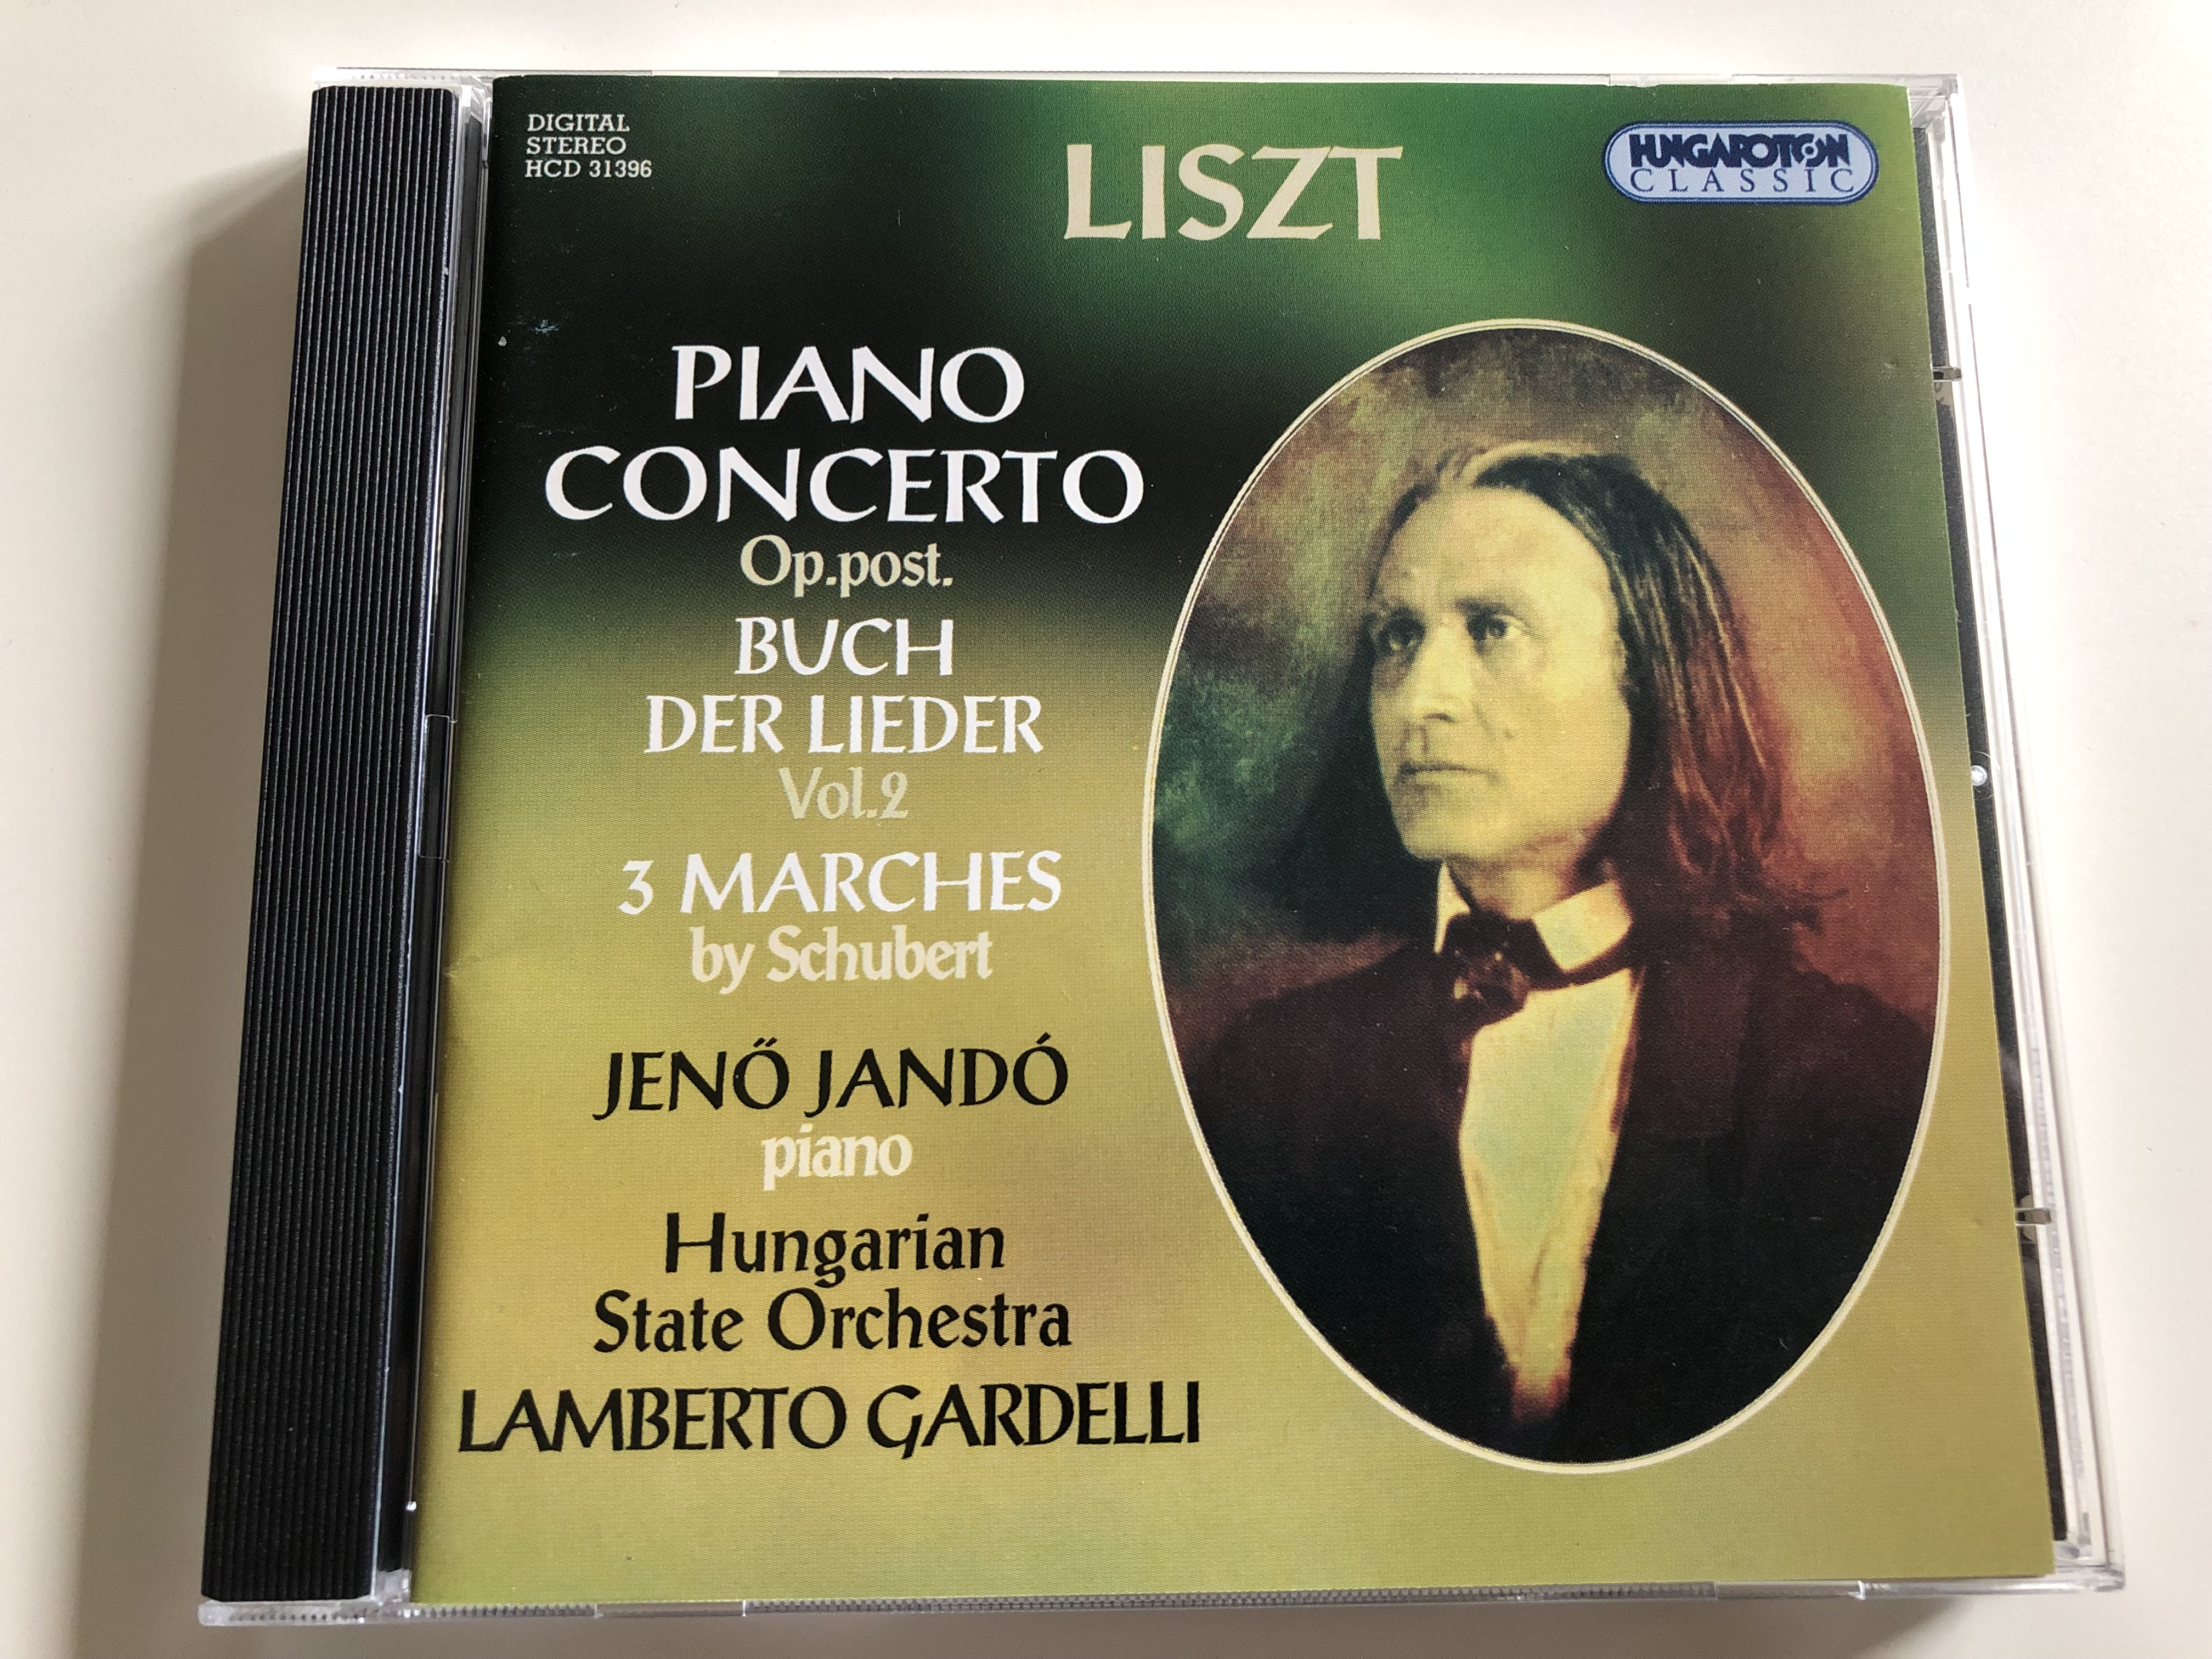 liszt-ferenc-piano-concerto-op.-post-buch-der-lieder-vol.2-jen-jand-piano-hungarian-state-orchestra-conducted-by-lamberto-gardelli-audio-cd-1997-hungaroton-classic-hcd-31396-1-.jpg